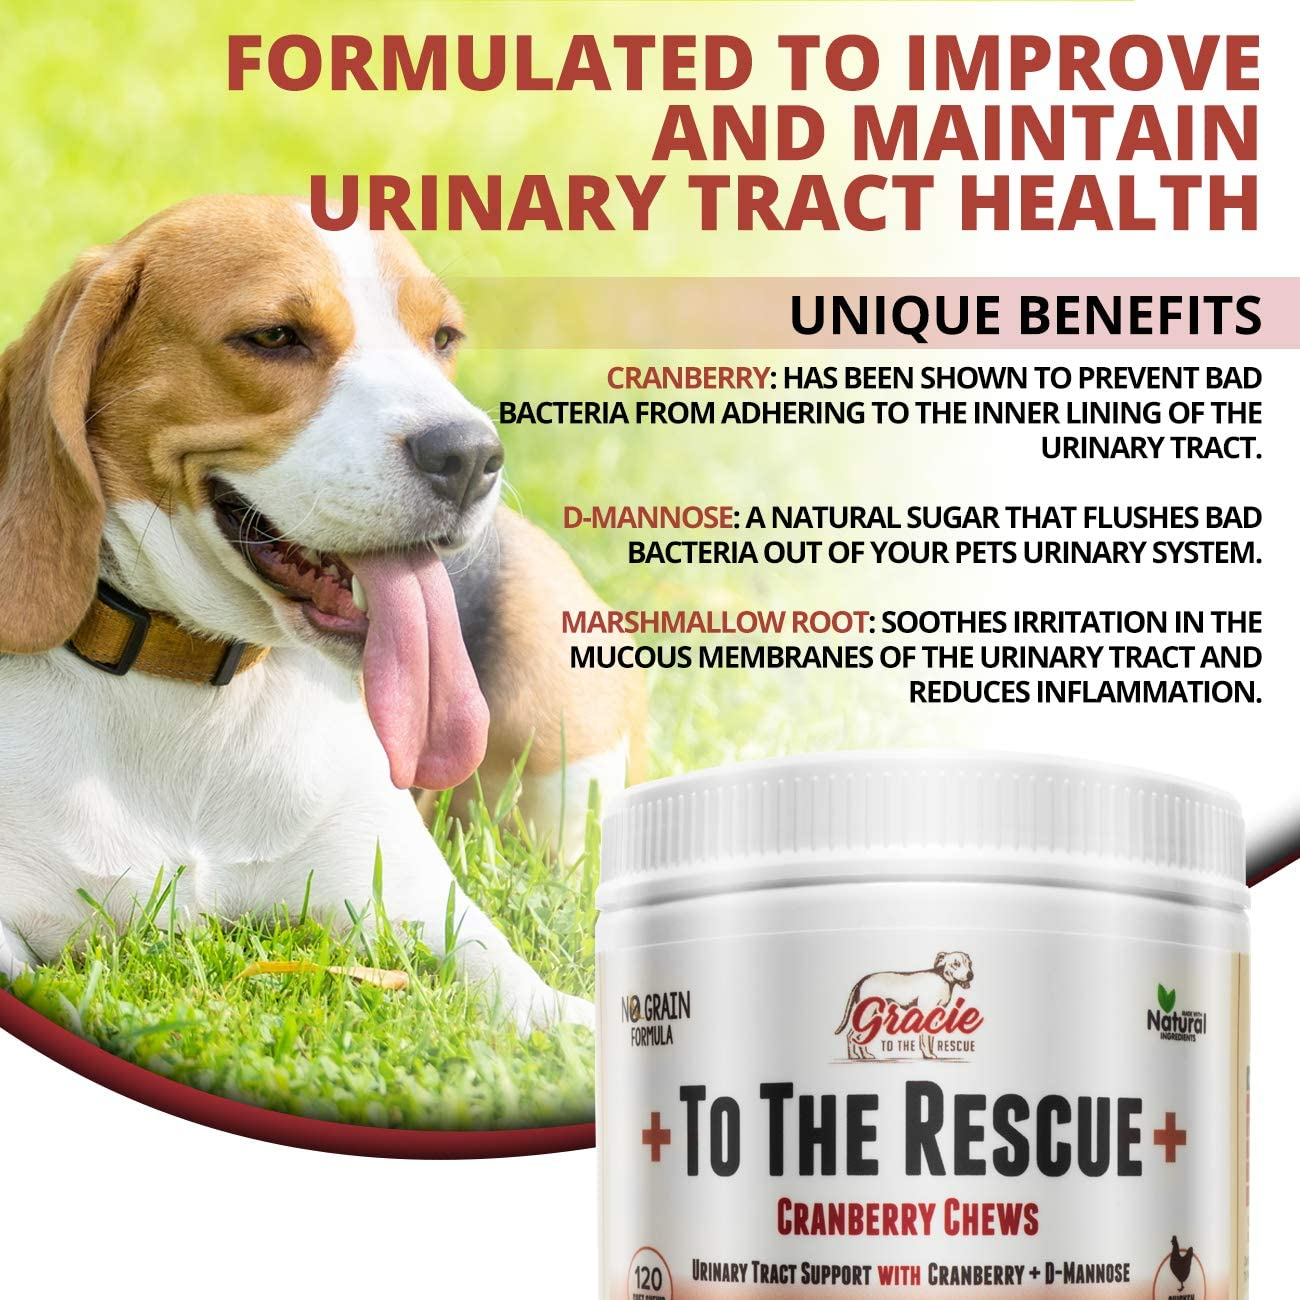 Natural Dog UTI Treatment – Cranberry for Dogs, Bladder and UTI Support for Dogs – Bladder Infection Relief with D-Mannose 120 Chicken Flavored Soft Chews to The Rescue